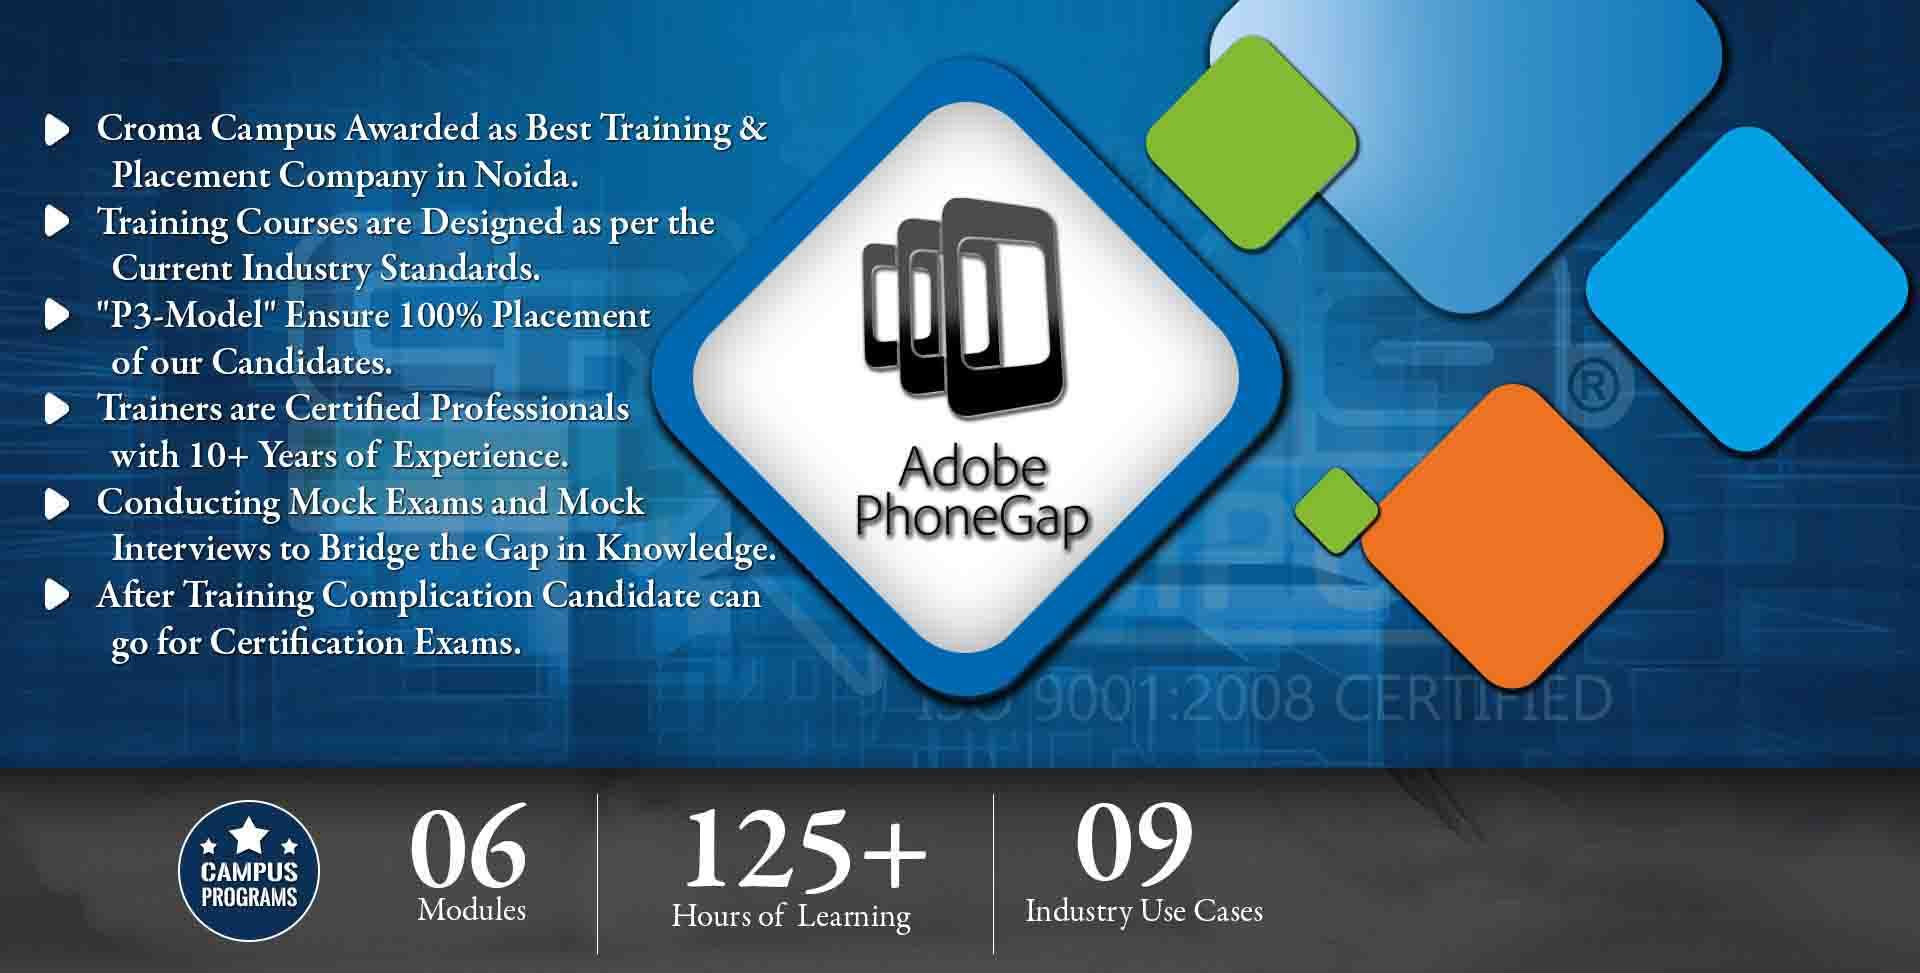 PhoneGap Training in Delhi NCR- Croma Campus